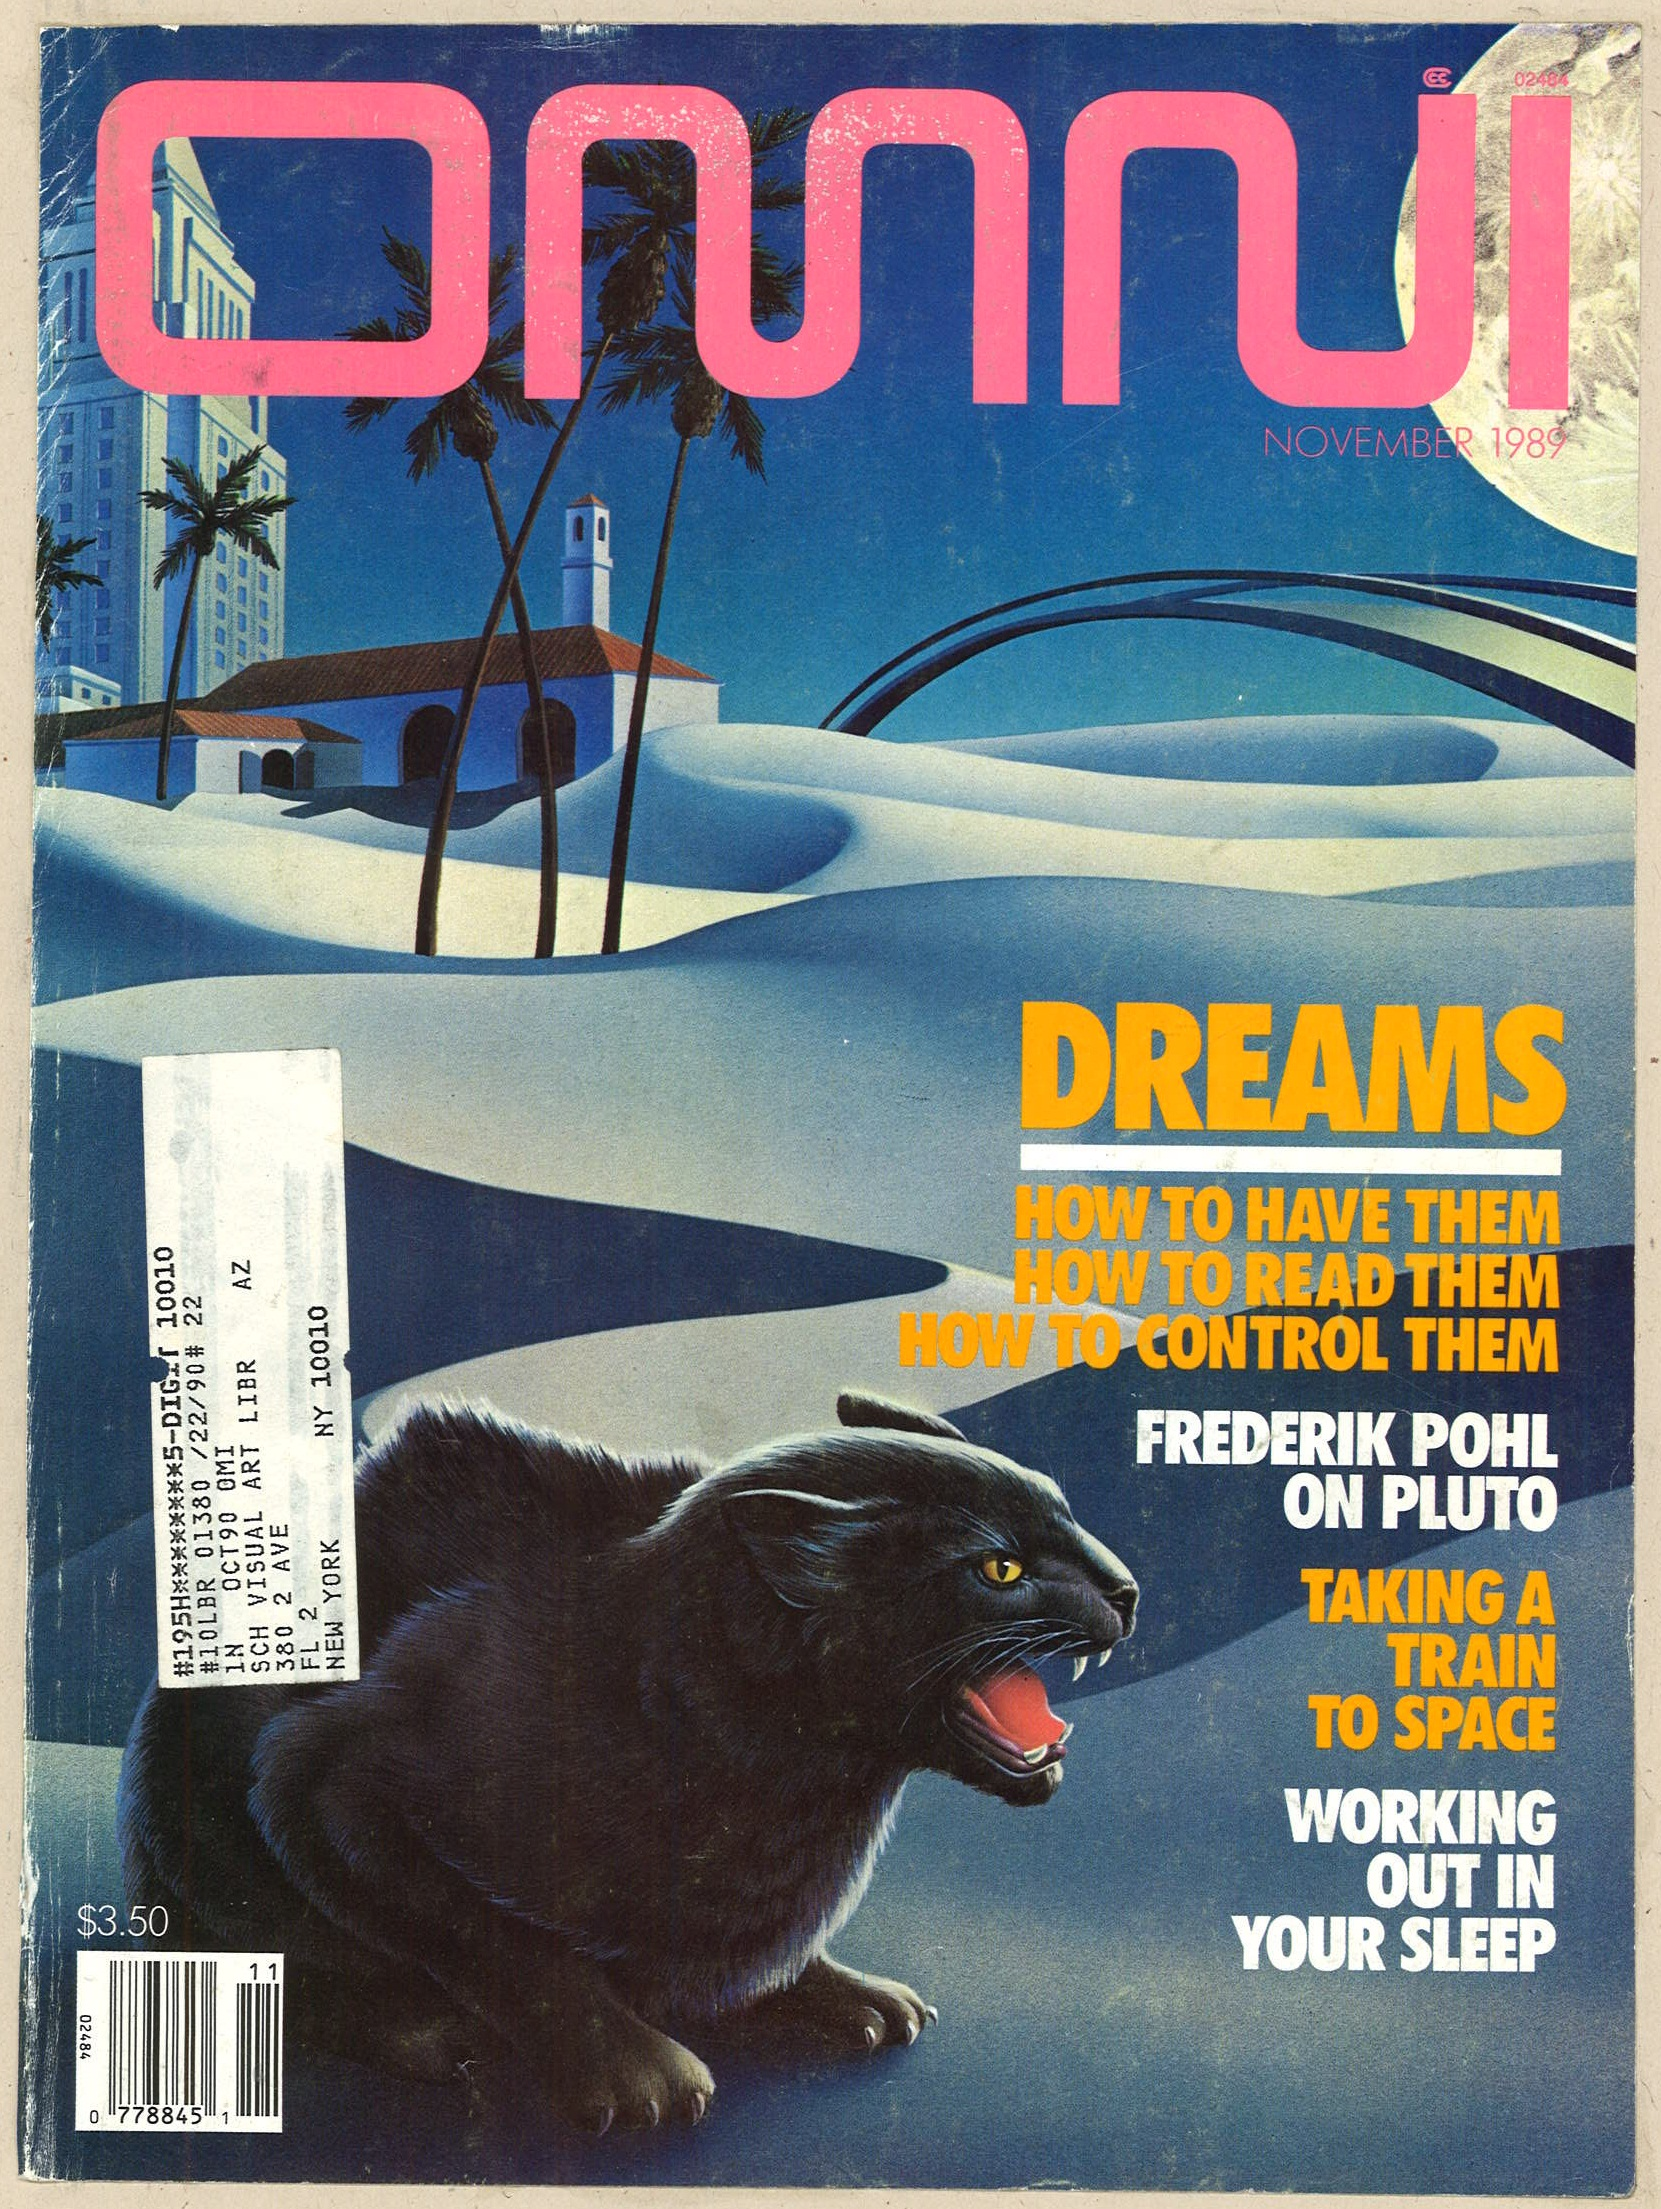 Magazines Collection Fashion Nails 4 Et 5: SVA Library Picture & Periodicals Collections